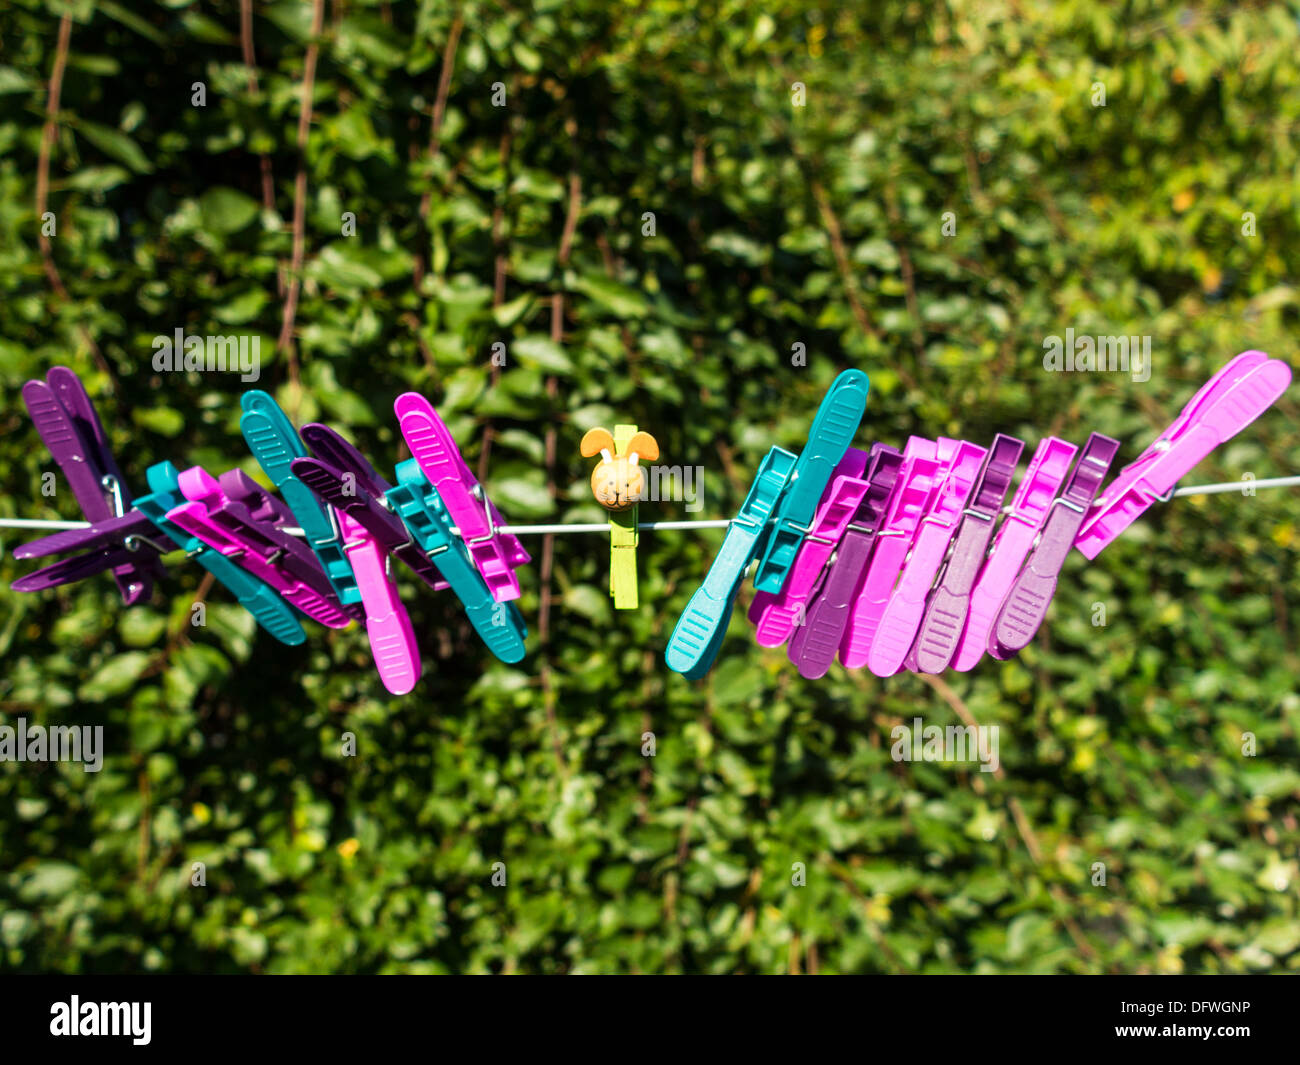 Colorful character plastic pegs on a line standing apart from the central lonely character - Stock Image